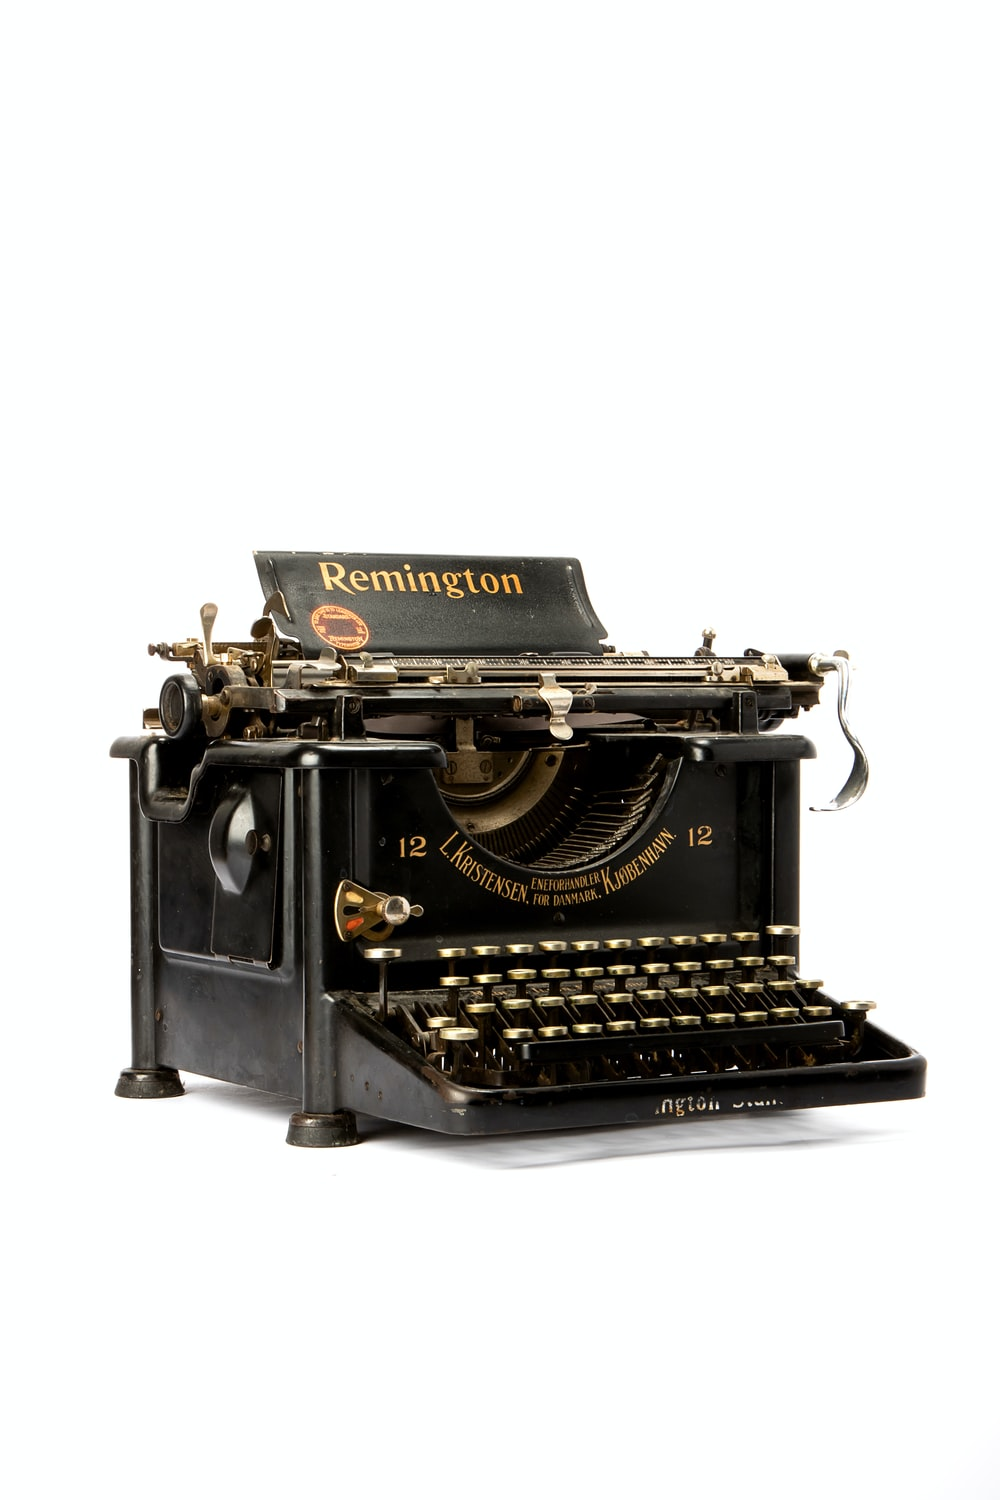 classic black Remington typewriter